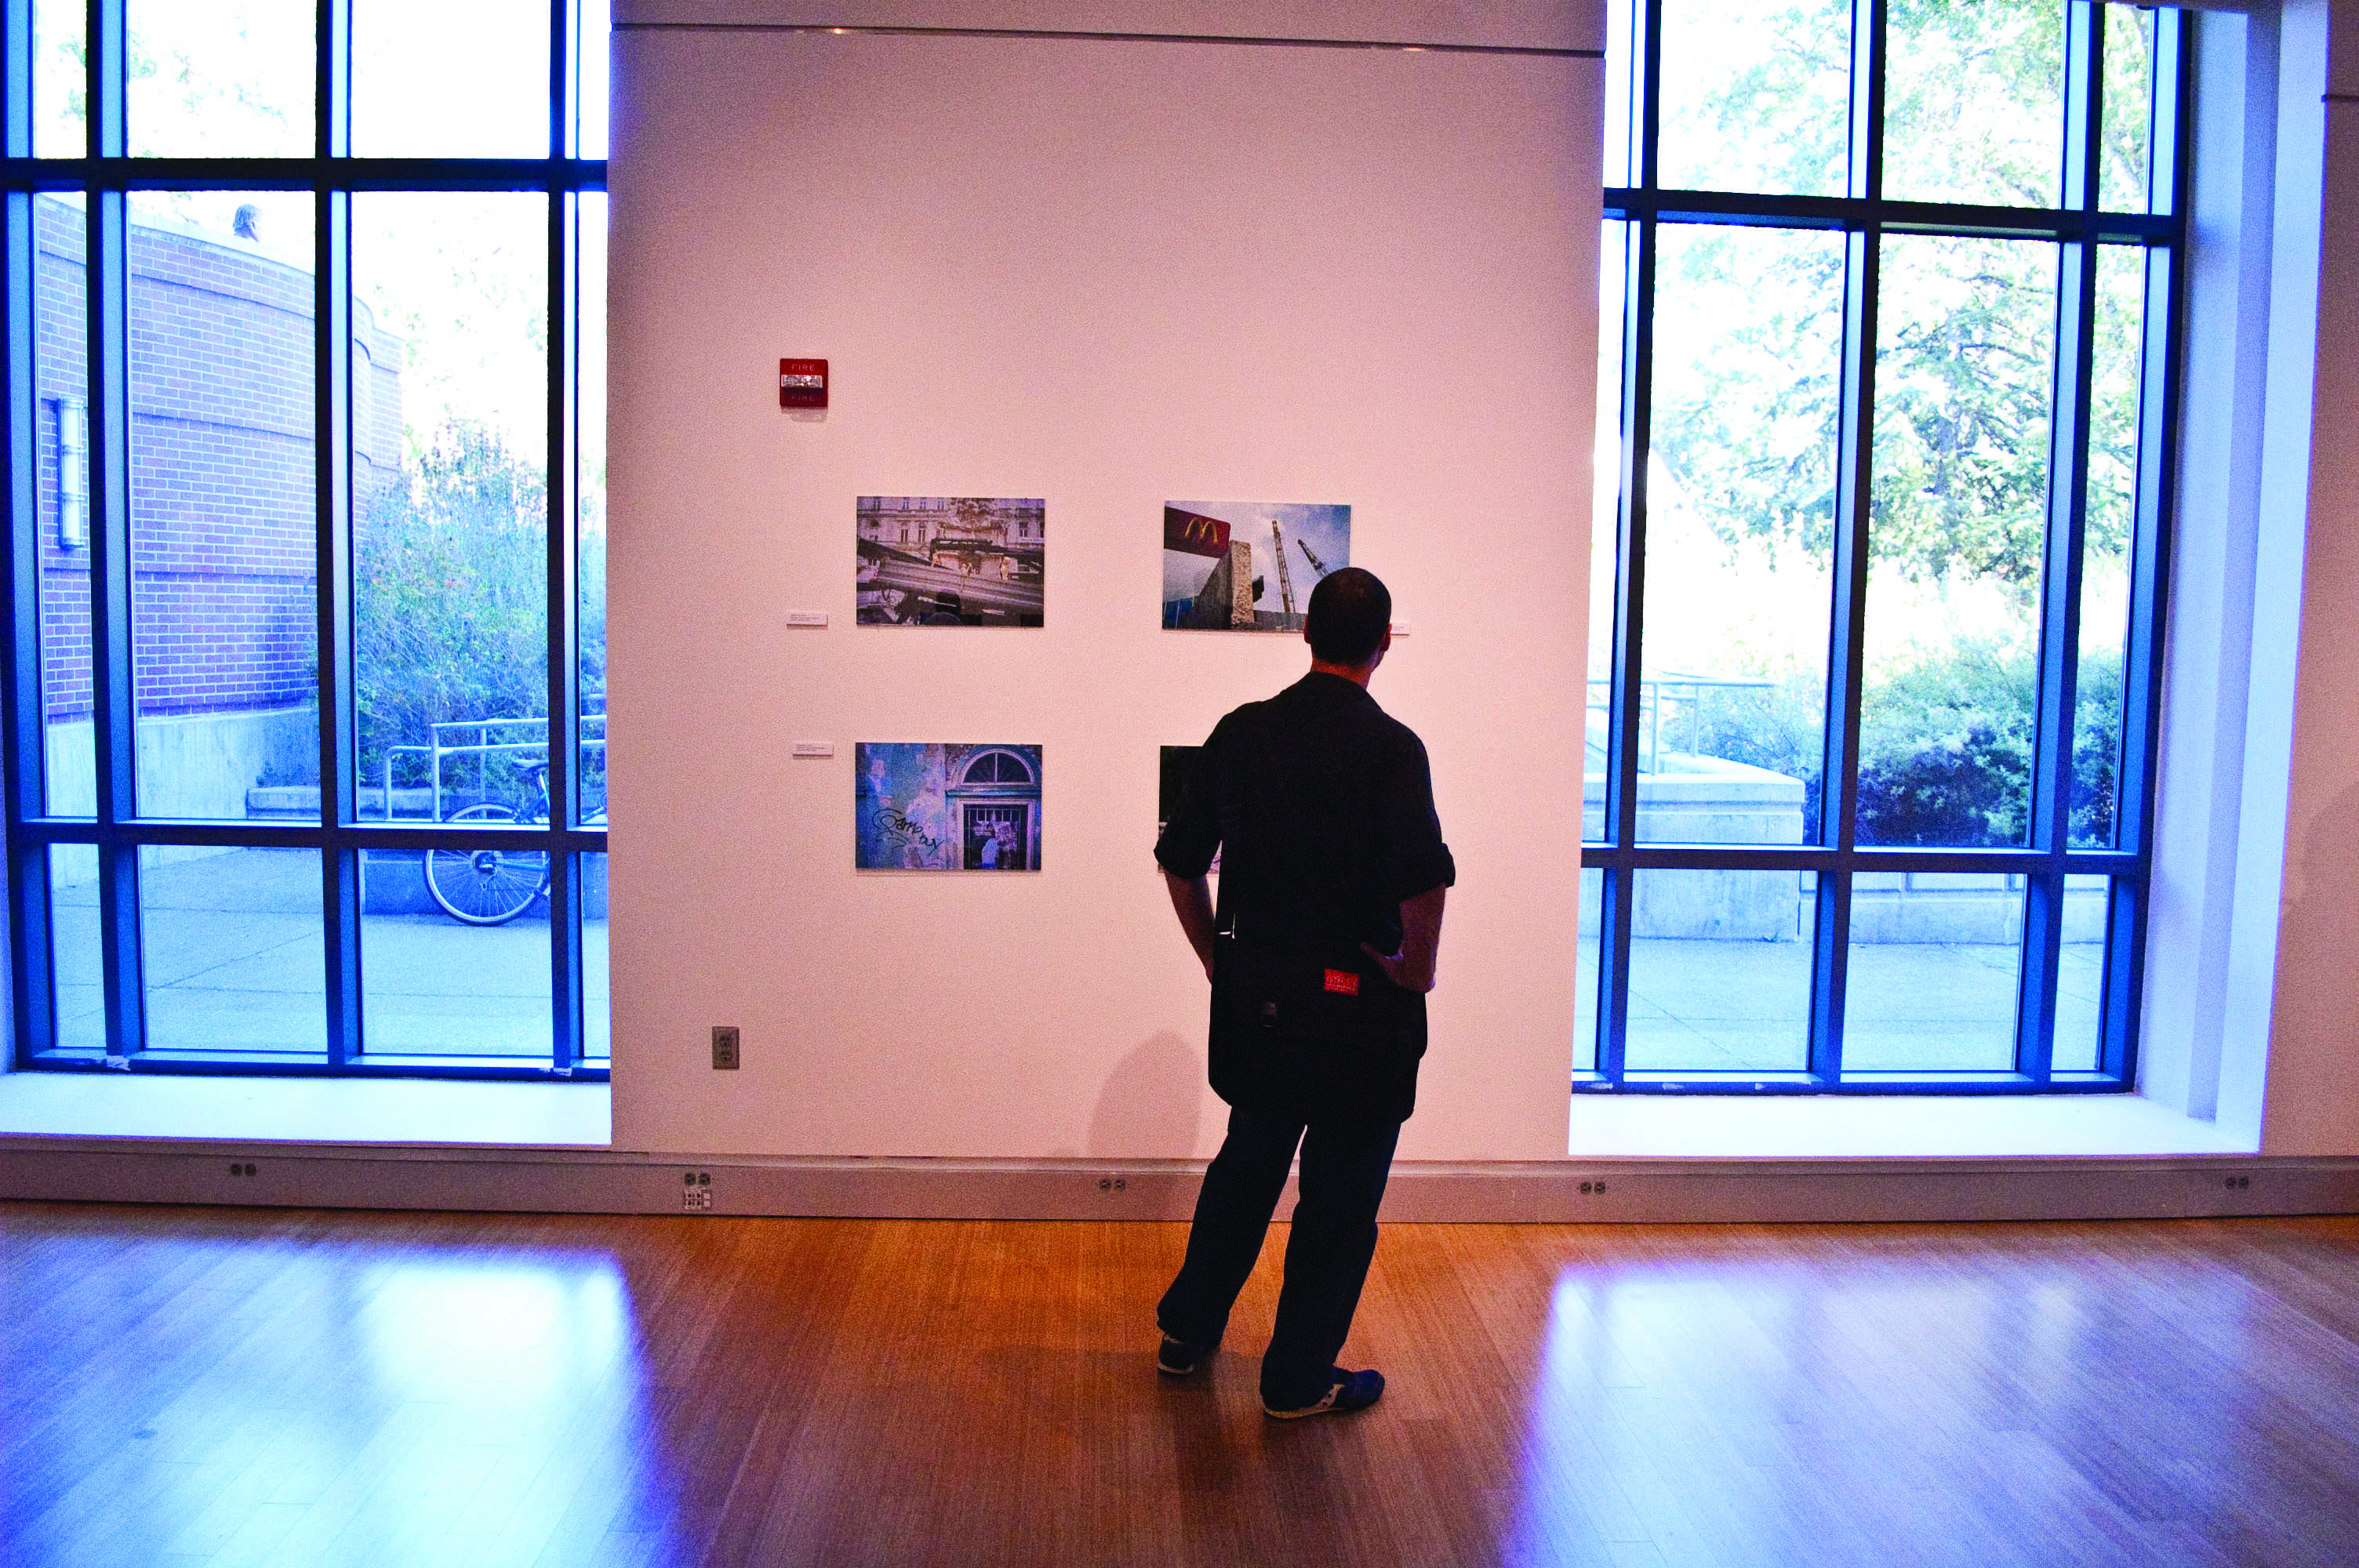 The Time Travel Gallery opened Sept. 22 and runs until Oct. 22 at the bottom floor of the SRJC library.